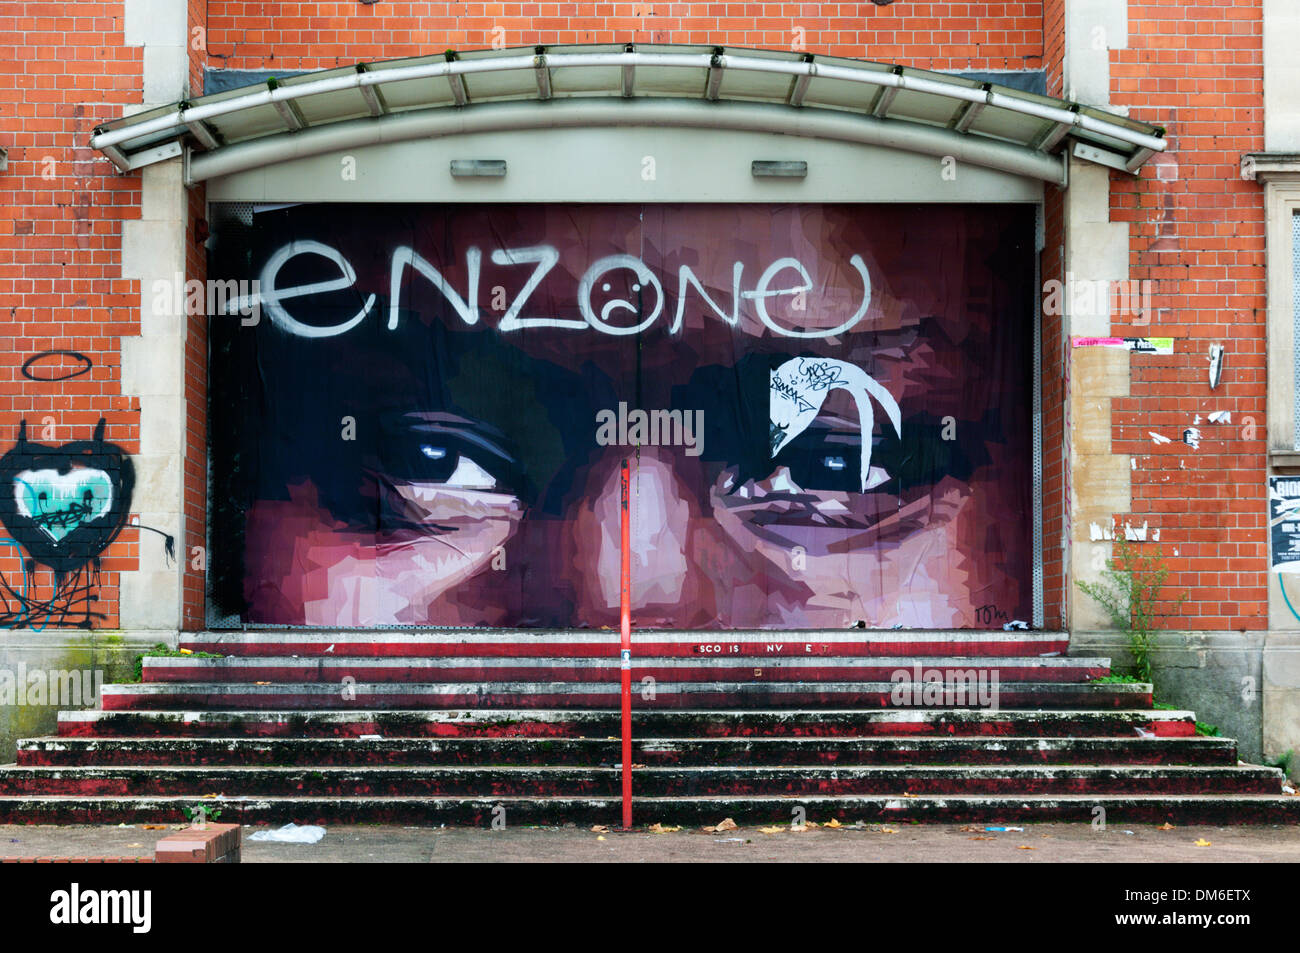 Graffiti by Tom in the Stokes Croft area of Bristol on the former cinema and Jesters Comedy Club. - Stock Image